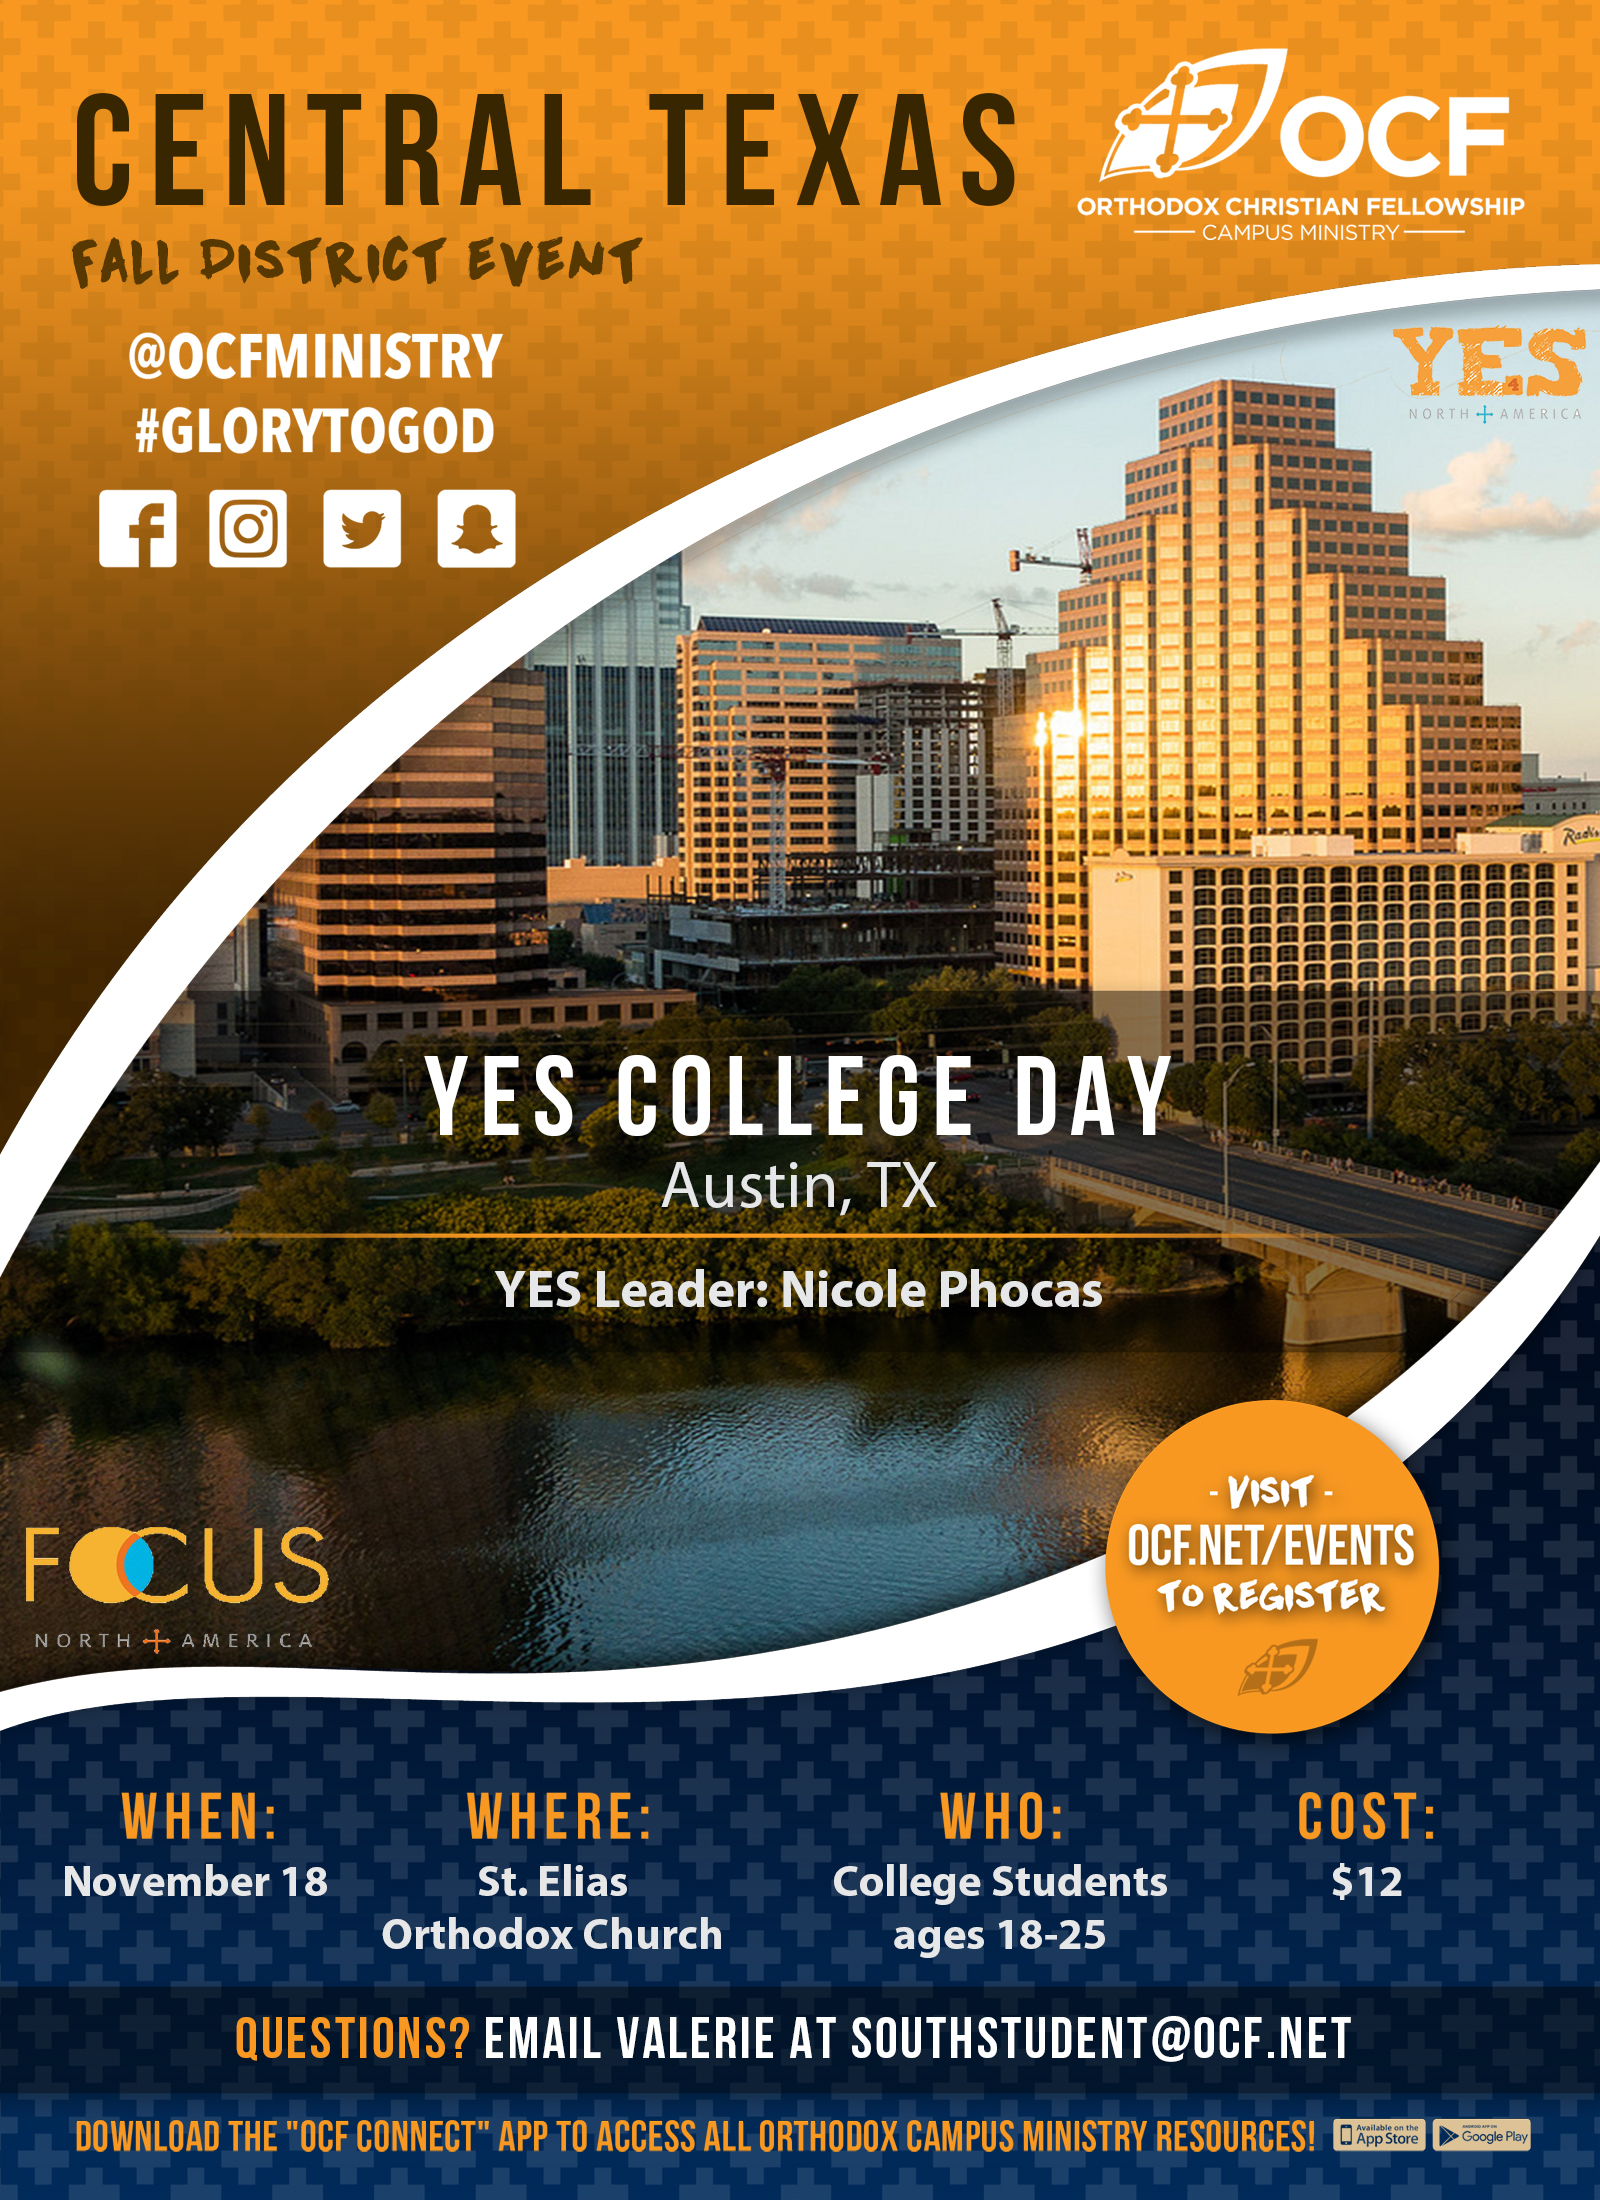 Fall 2017 Central Texas YES College Day